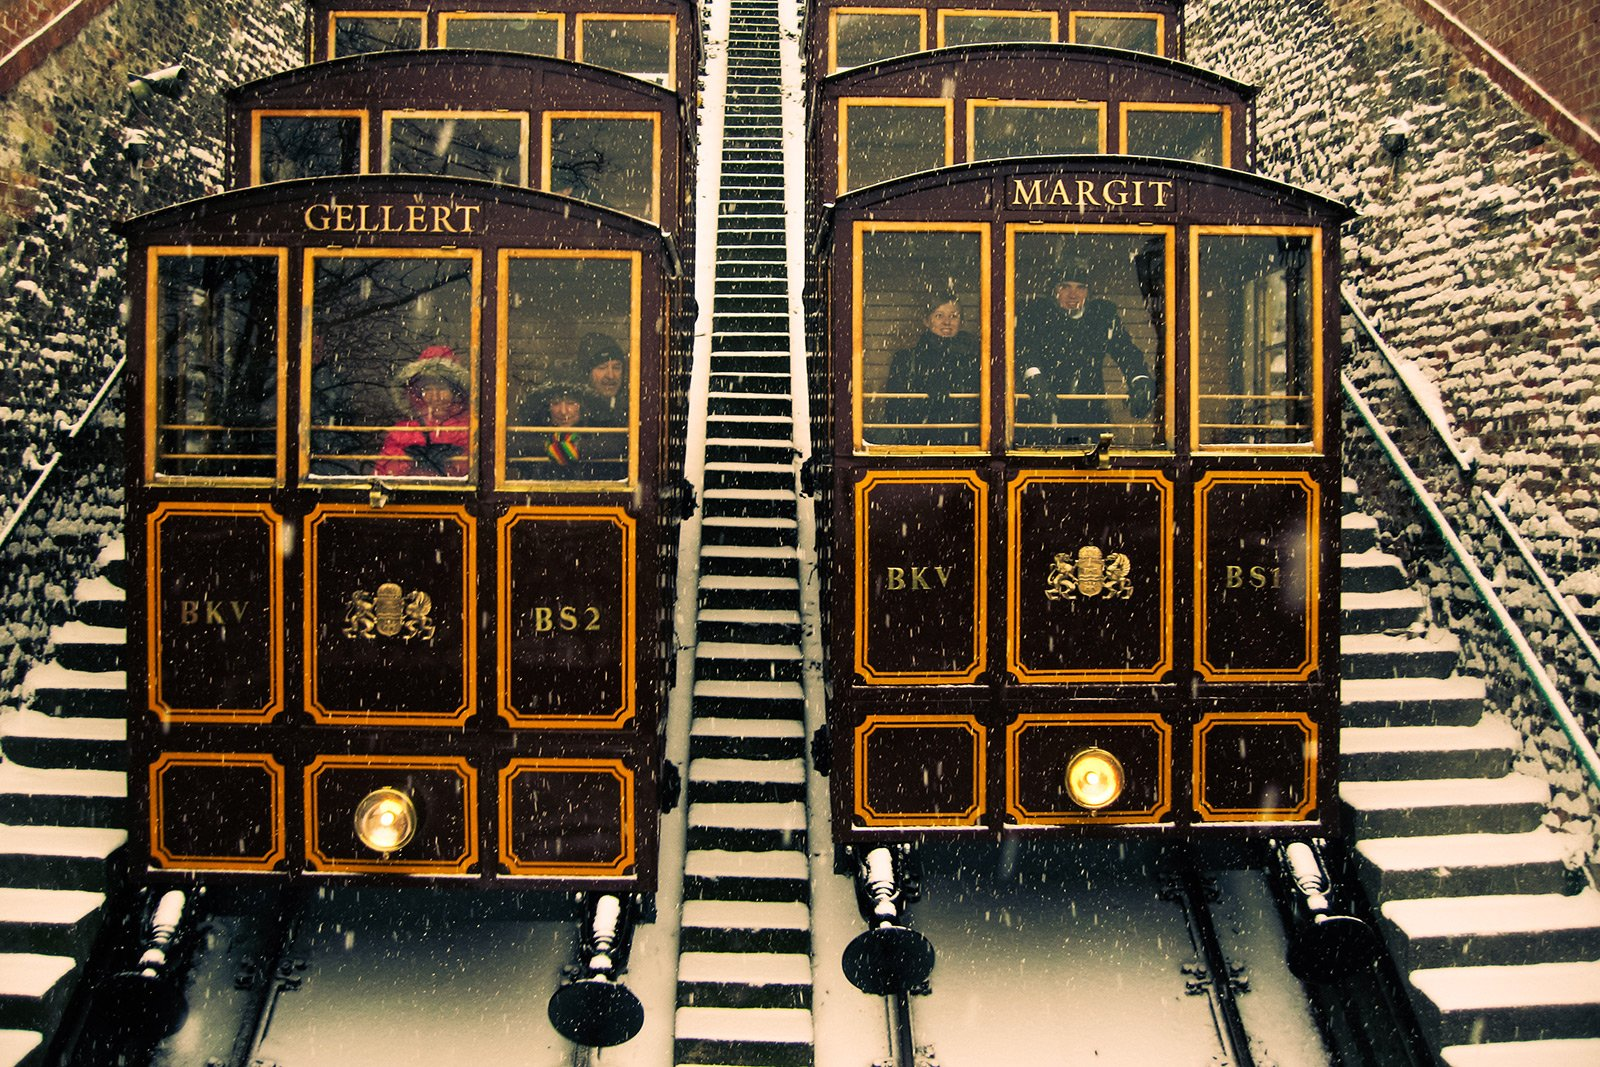 How to ride on the old funicular in Budapest